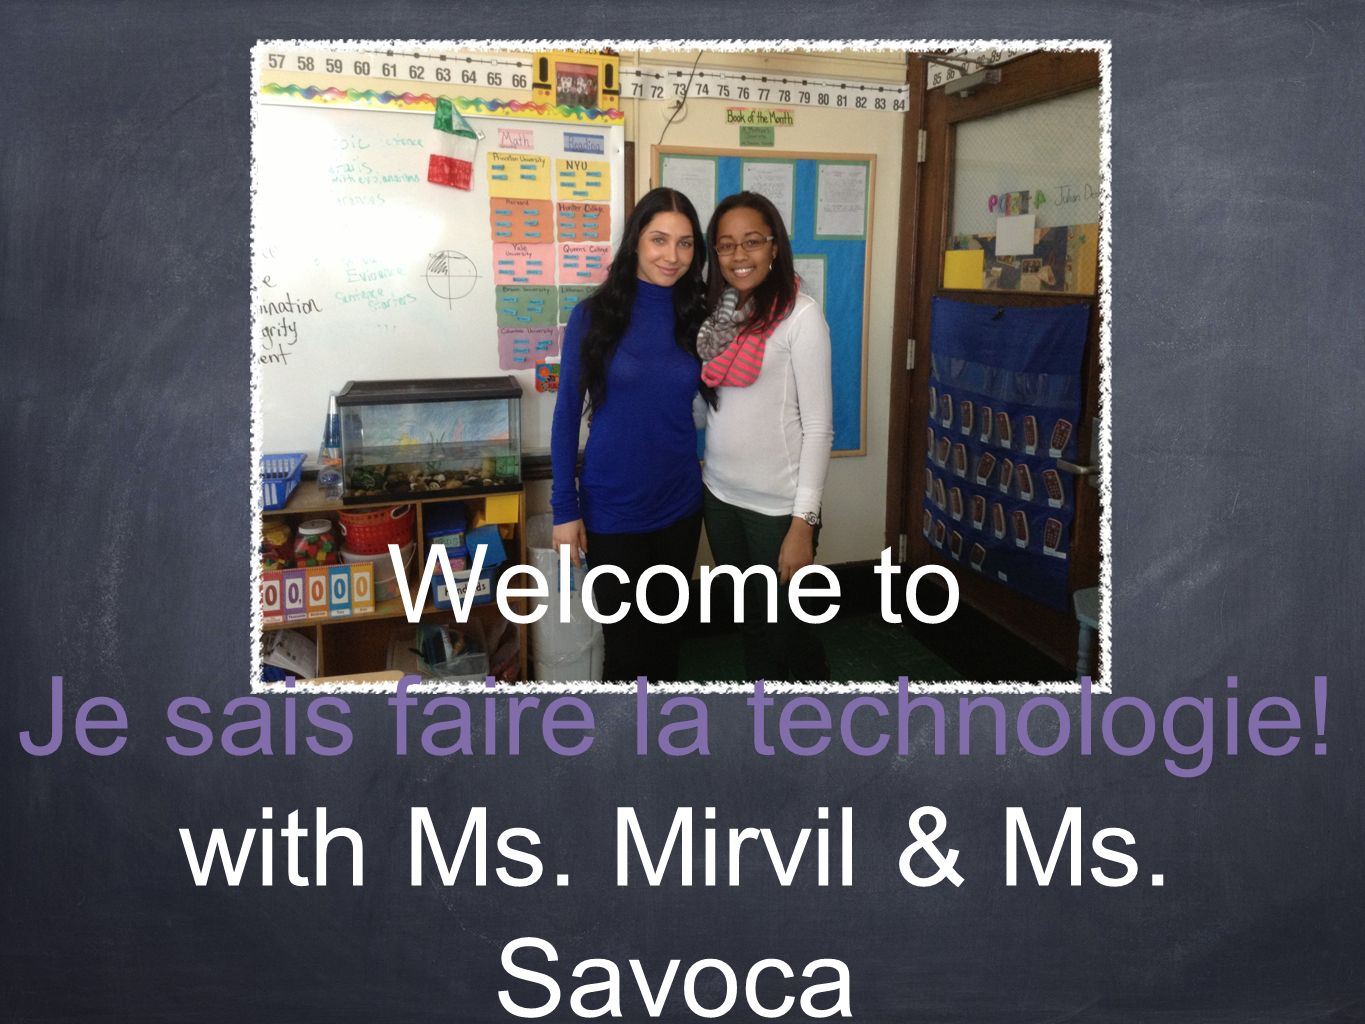 Welcome to Je sais faire la technologie! with Ms. Mirvil & Ms. Savoca